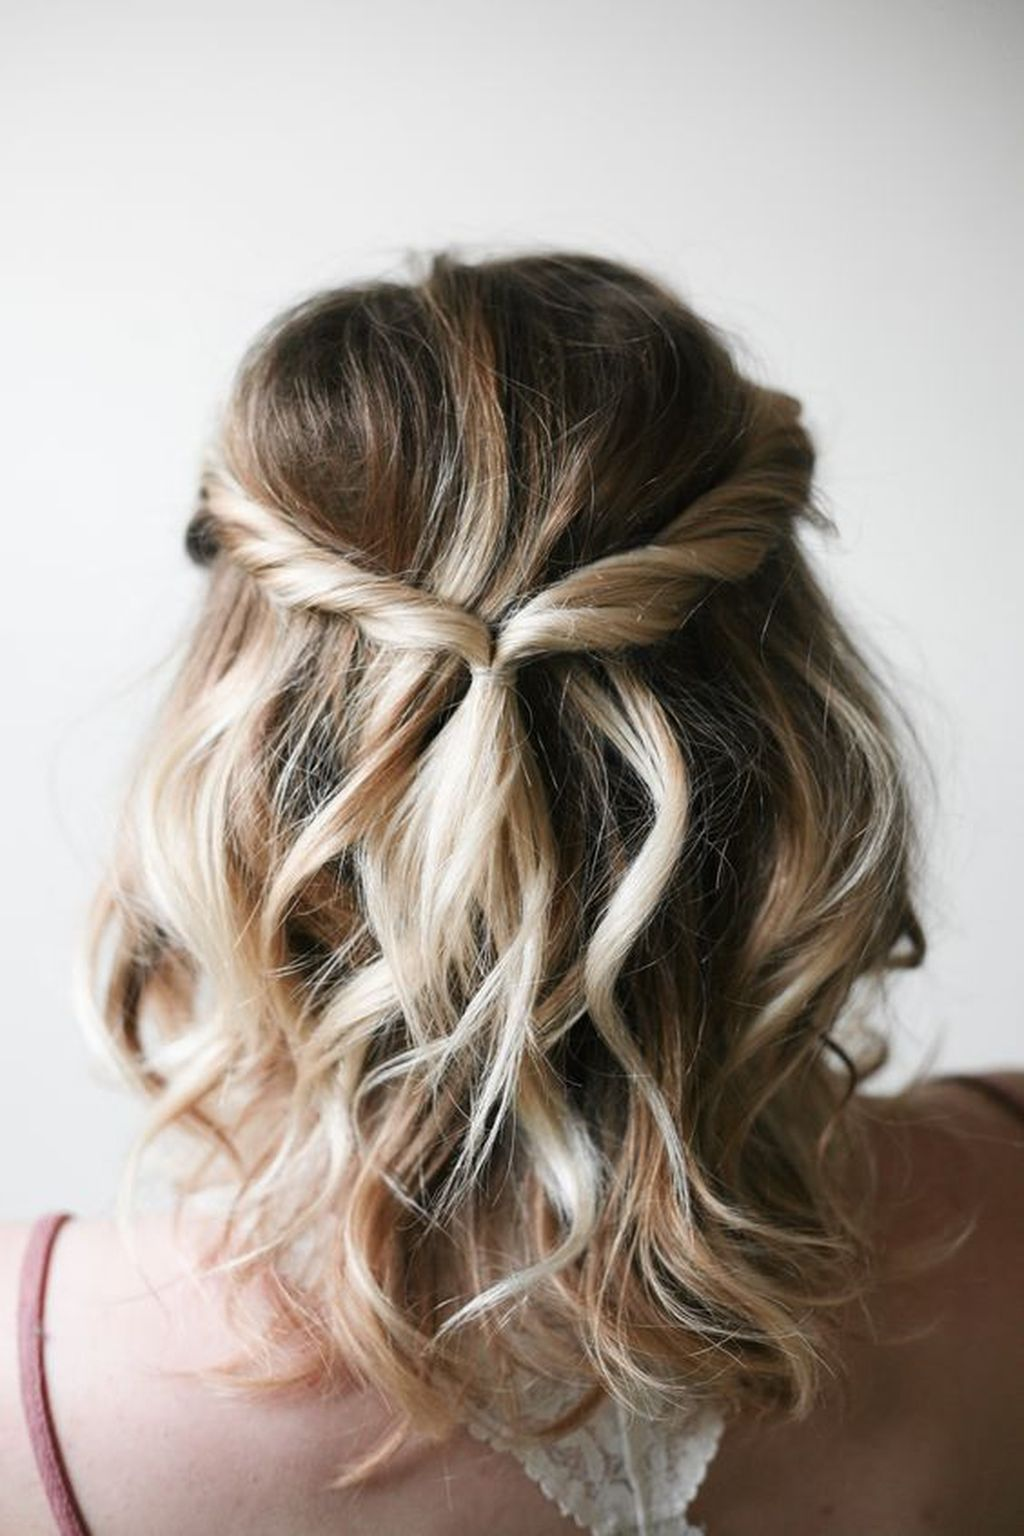 Arnold van opstal hairstyle braids and hairstyles pinterest